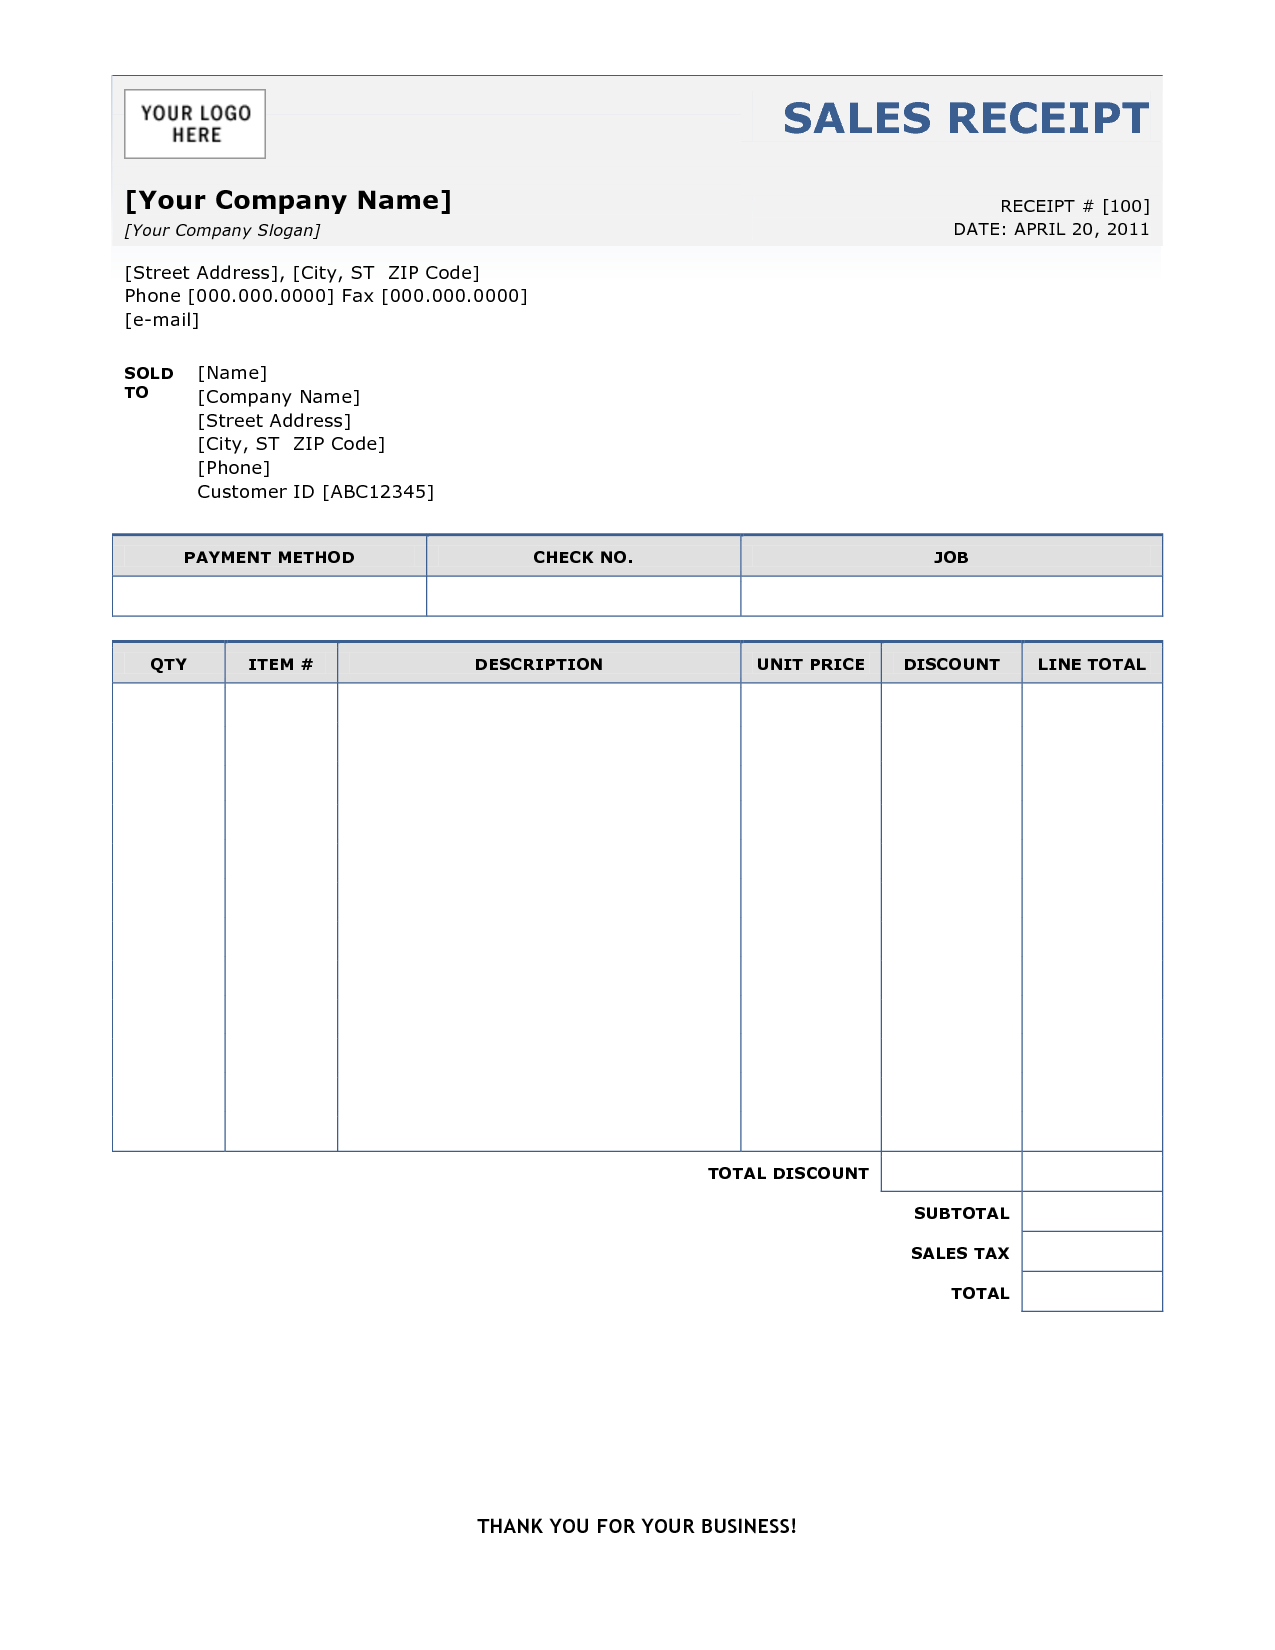 Global Depositary Receipt Excel Receipt Invoice Template  Invoice Example Uscis Receipt Status with What Is Receipt Number Excel Receipt Invoice Template  Best Images Of Bill Receipt Template Medical  Invoice Billing Invoices Templates Free Templates Form Gwubak Gmc Invoice Word